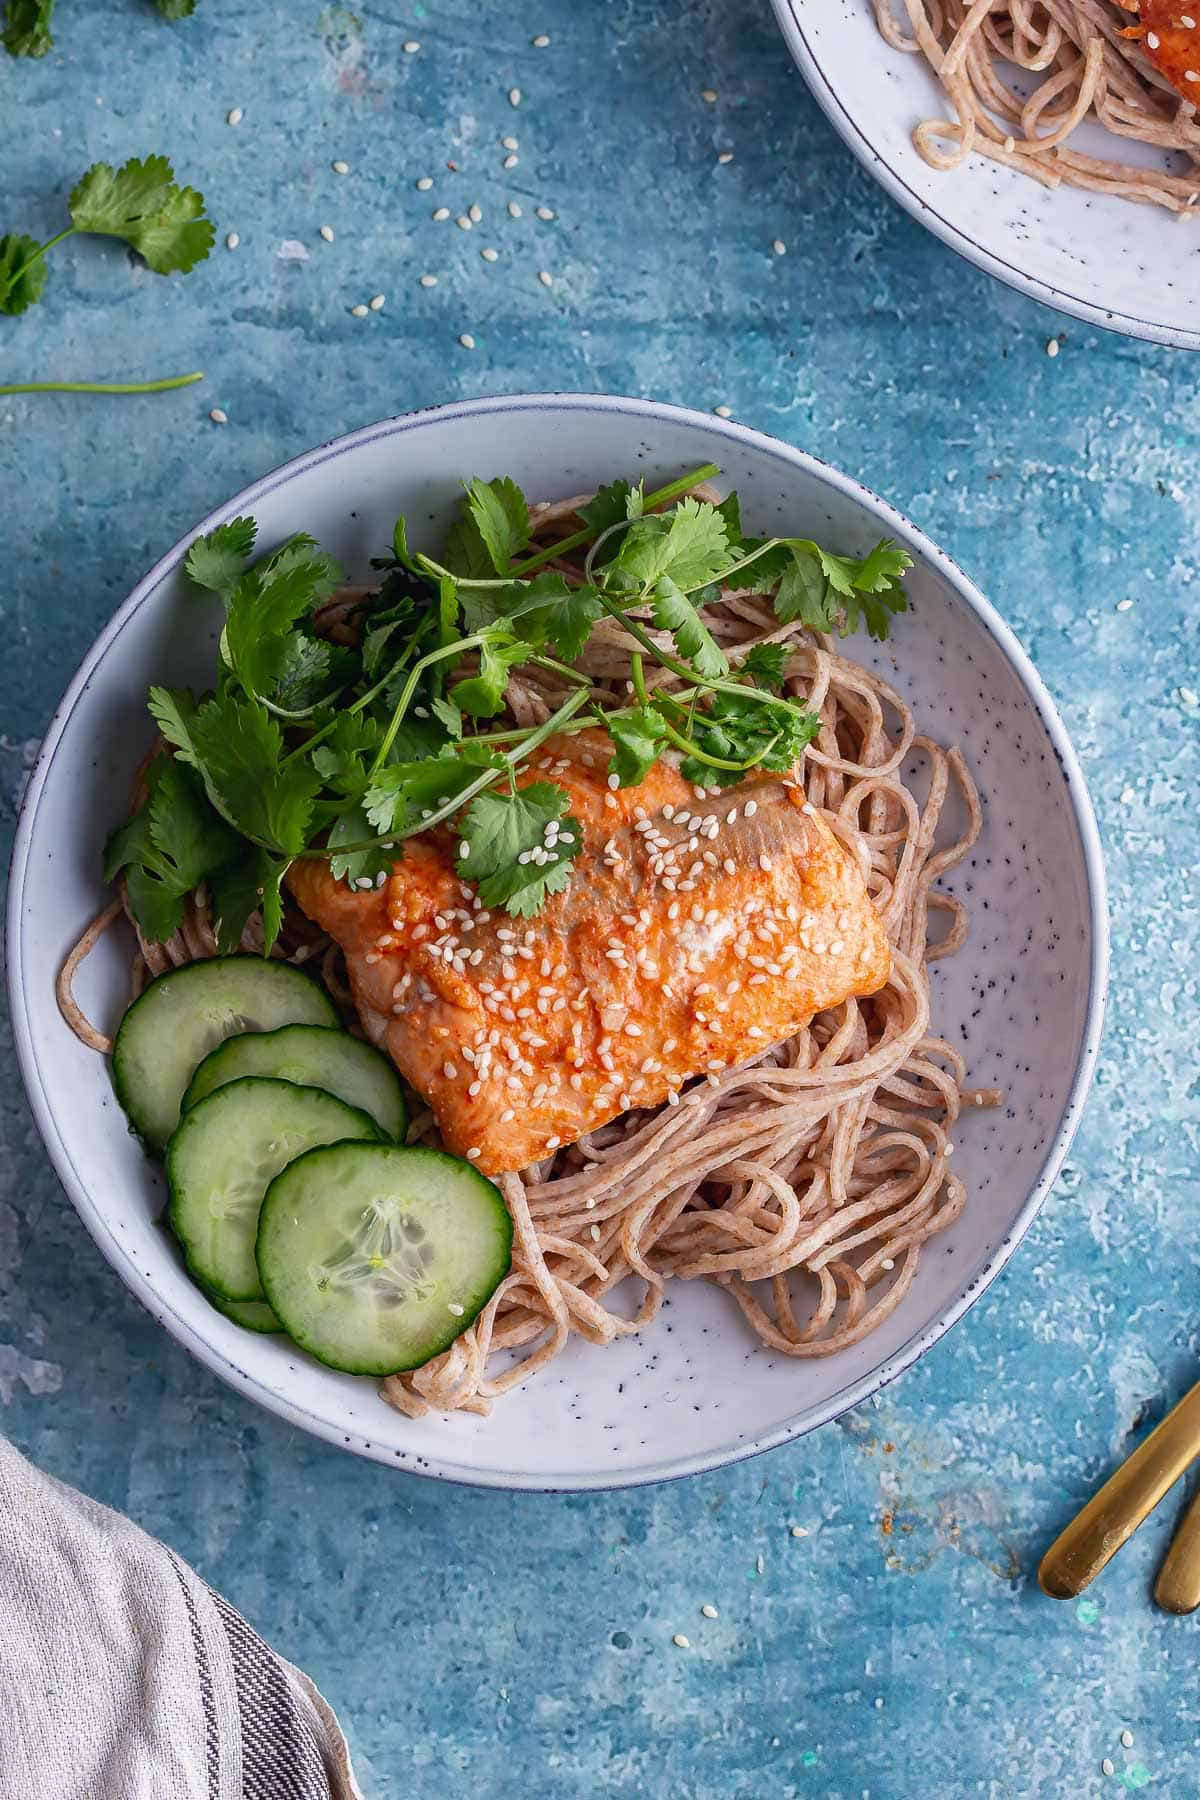 Overhead shot of salmon noodles in a blue bowl with coriander and cucumber